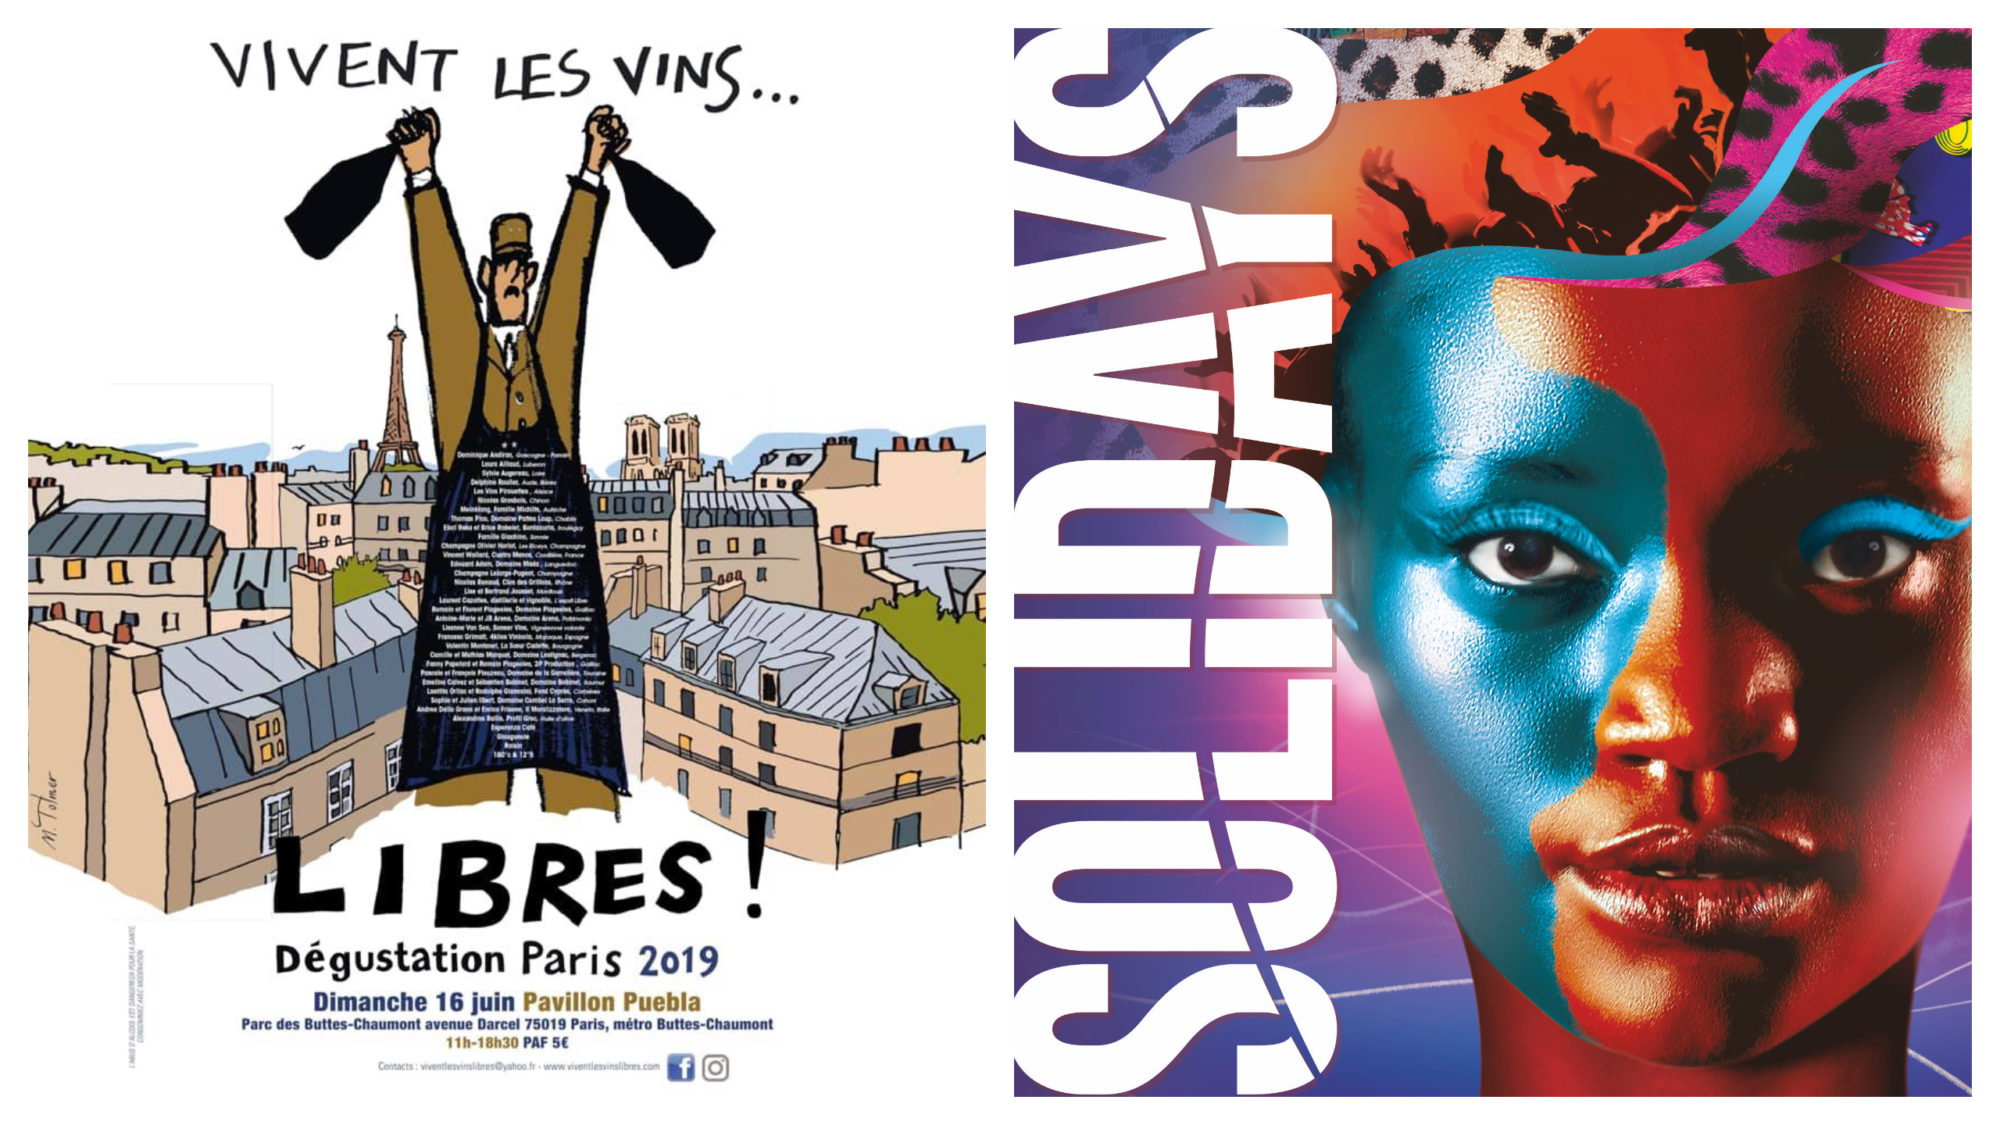 A poster for the wine-tasting event in Paris this June, 'Libres' (left). A poster for the Solidays music festival in Paris this June, with a black woman with her face painted blue and red (right).